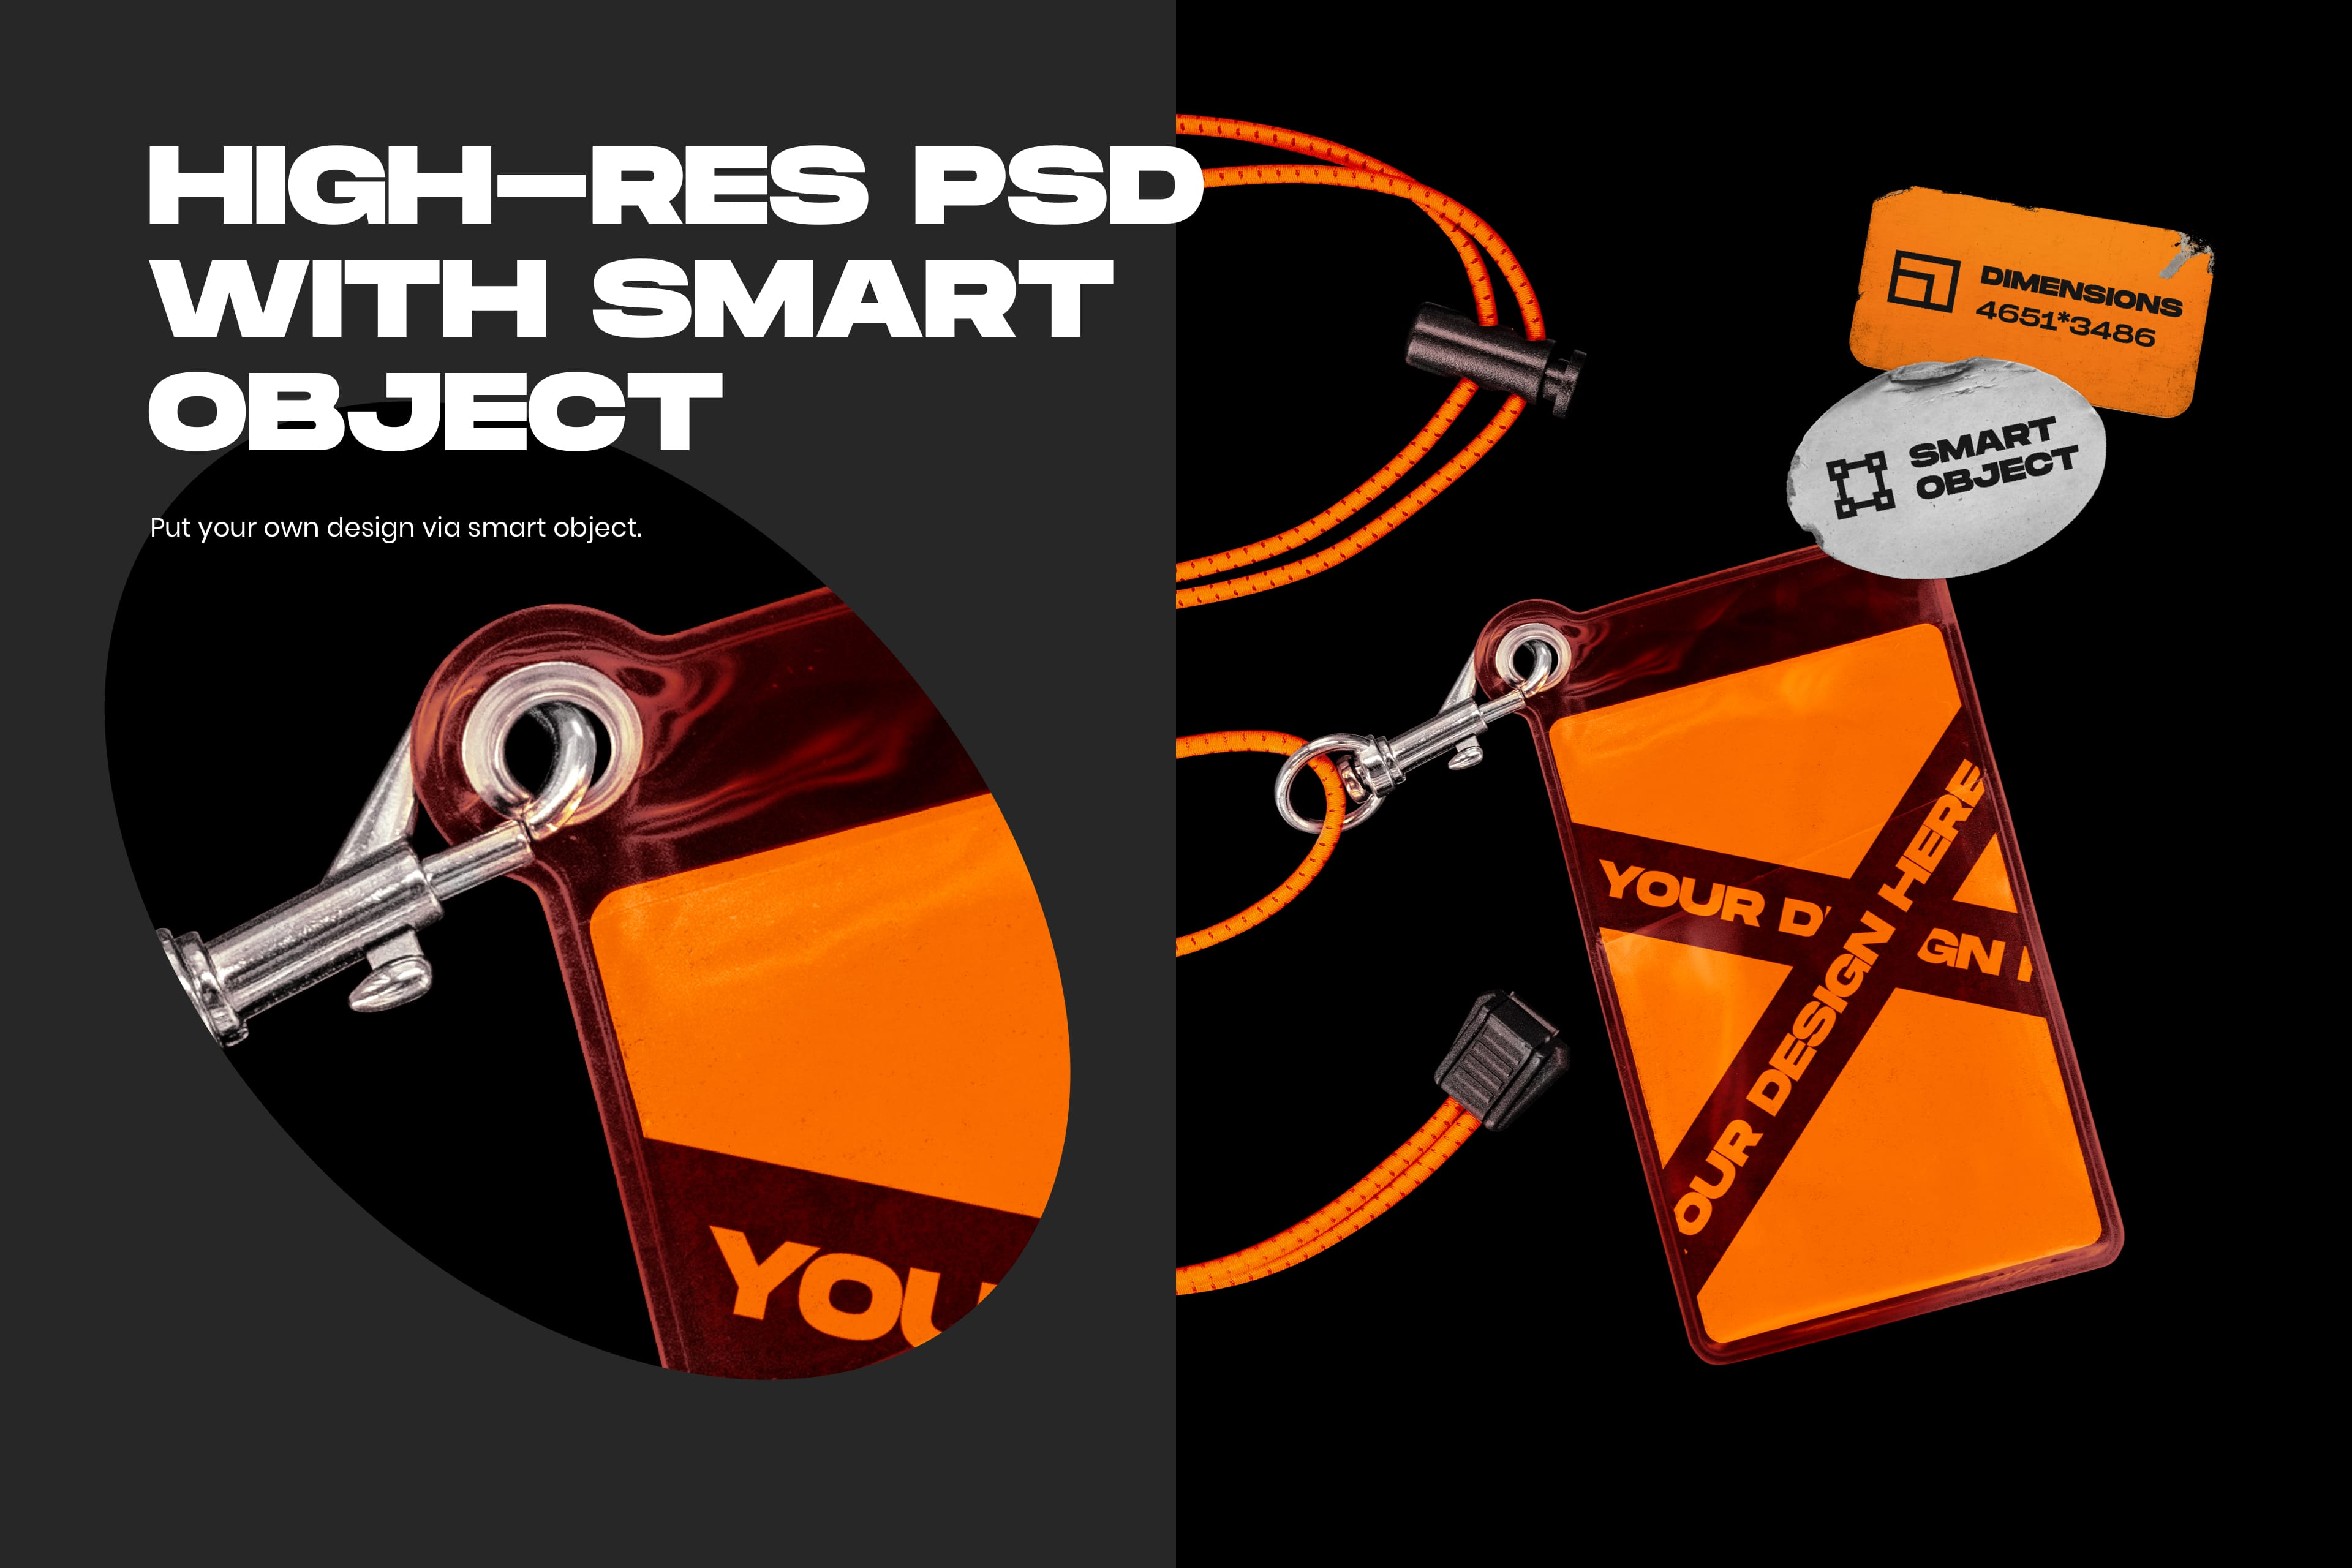 Plastic ID Card and Lanyard Mockup - High-res PSD with Smart Object